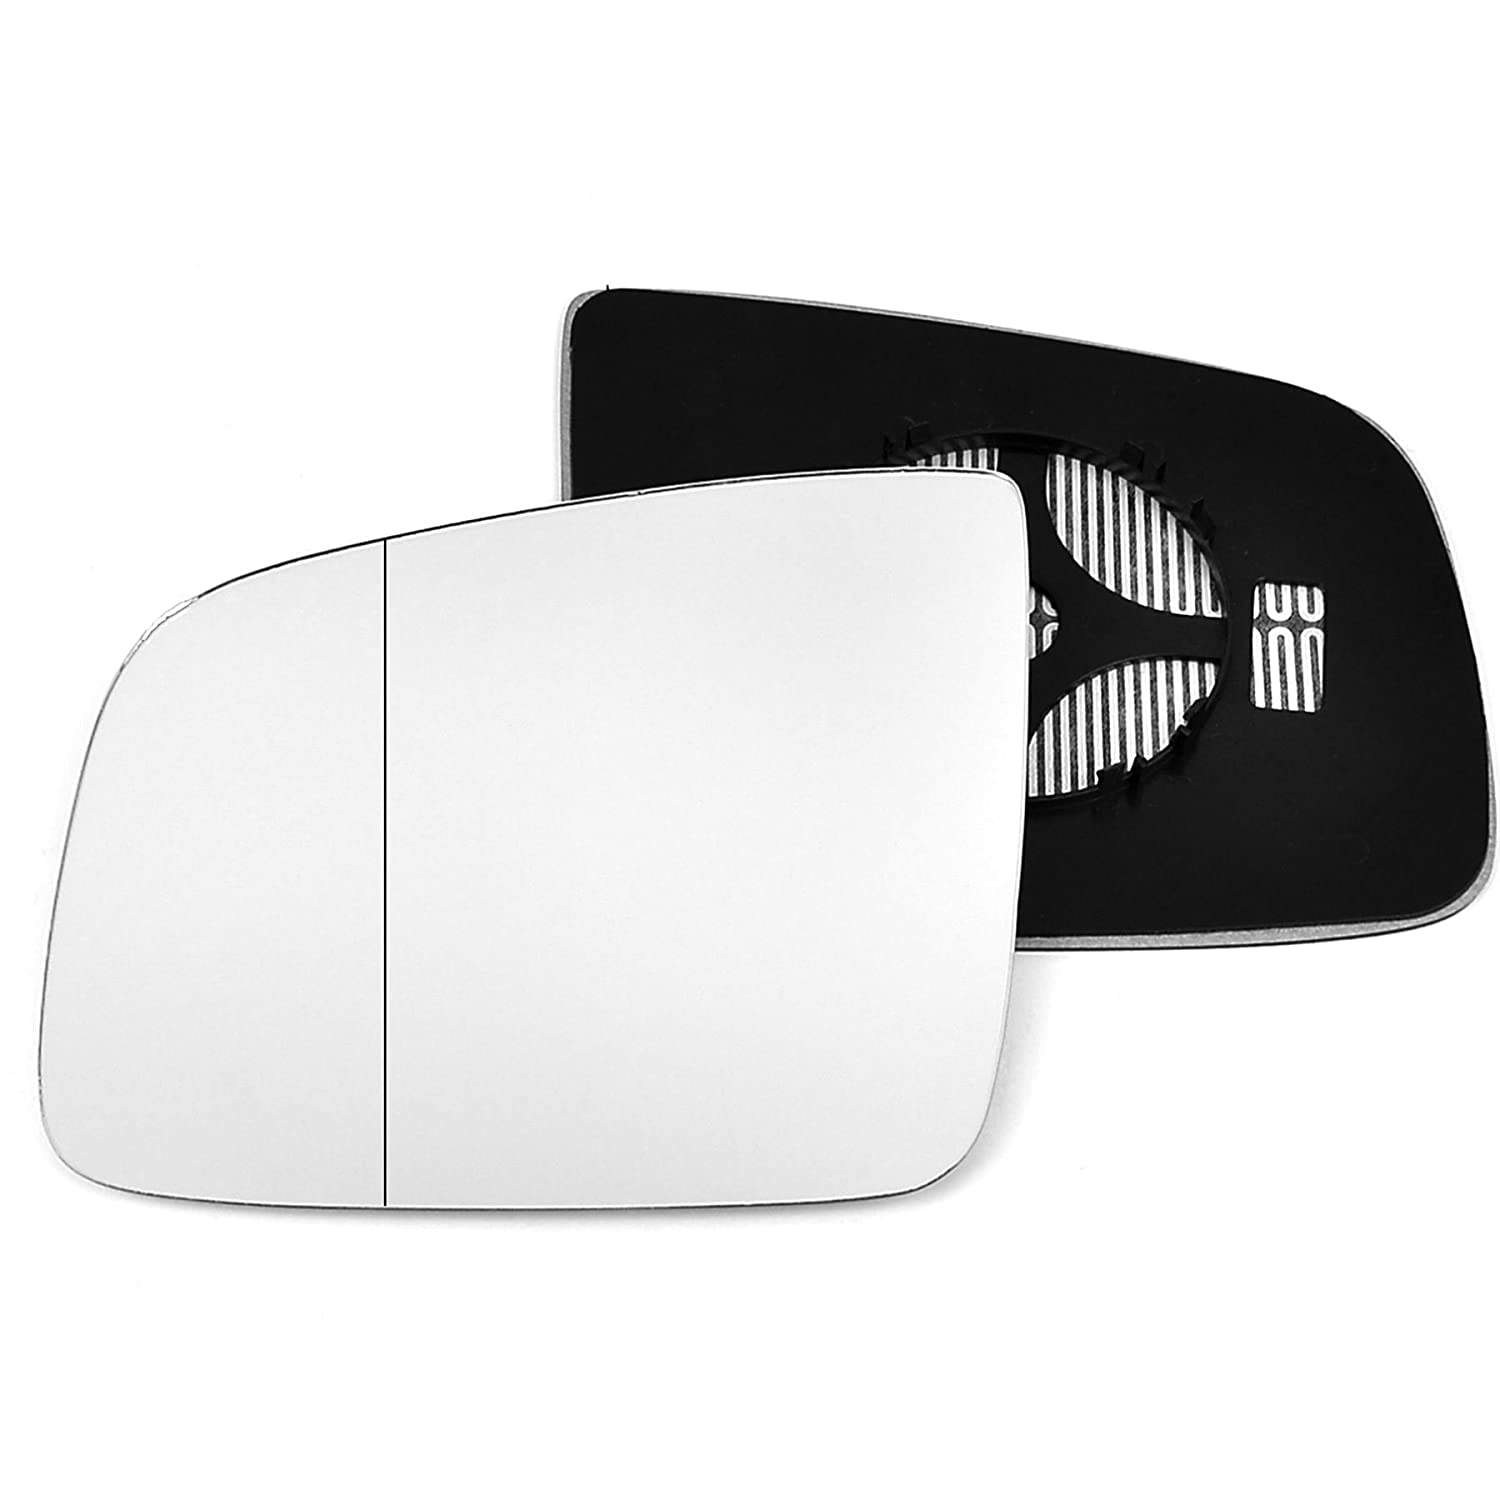 Clip On Passenger left hand side Heated wing door Silver mirror glass with backing plate #W-SHY//L-MSVO11